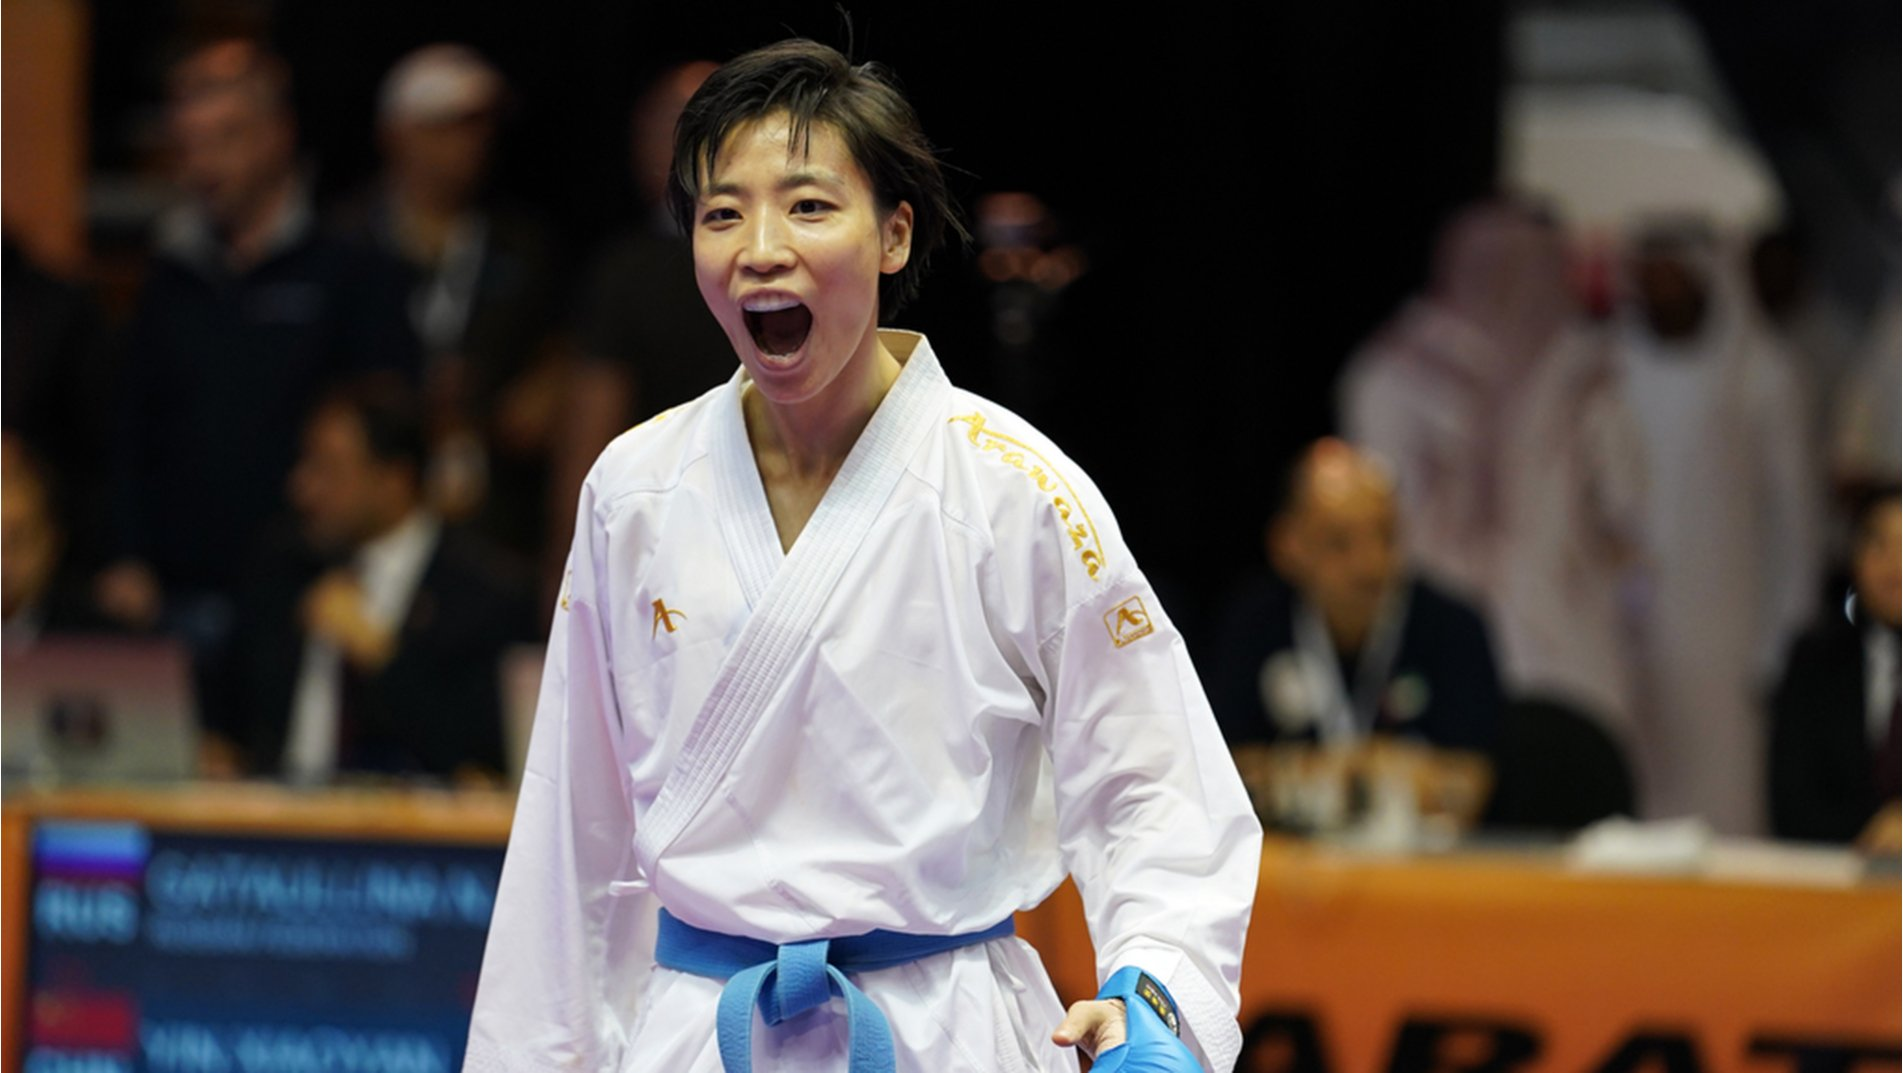 Day of come-backs in Karate 1 Premier League Dubai